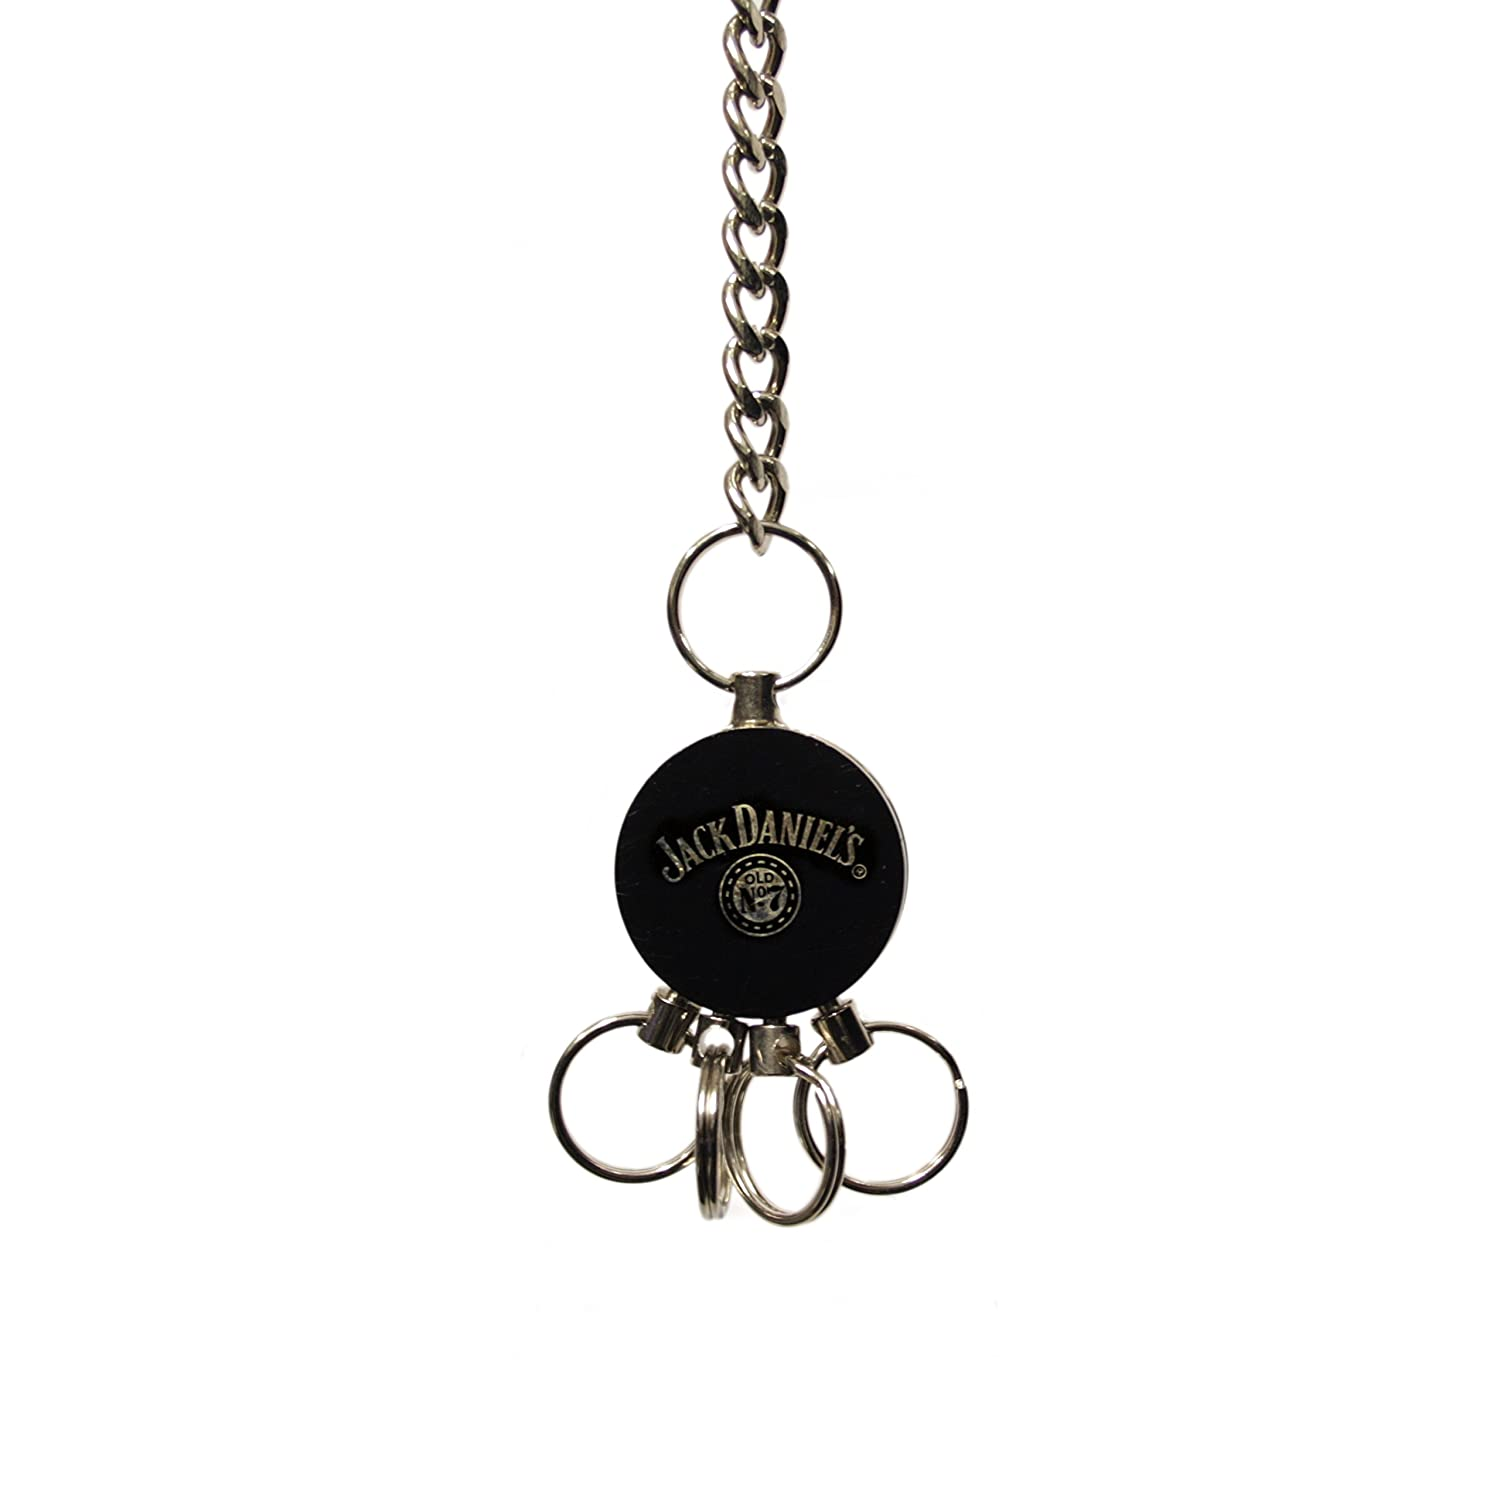 Amazon.com: Jack Daniels keychain: Clothing